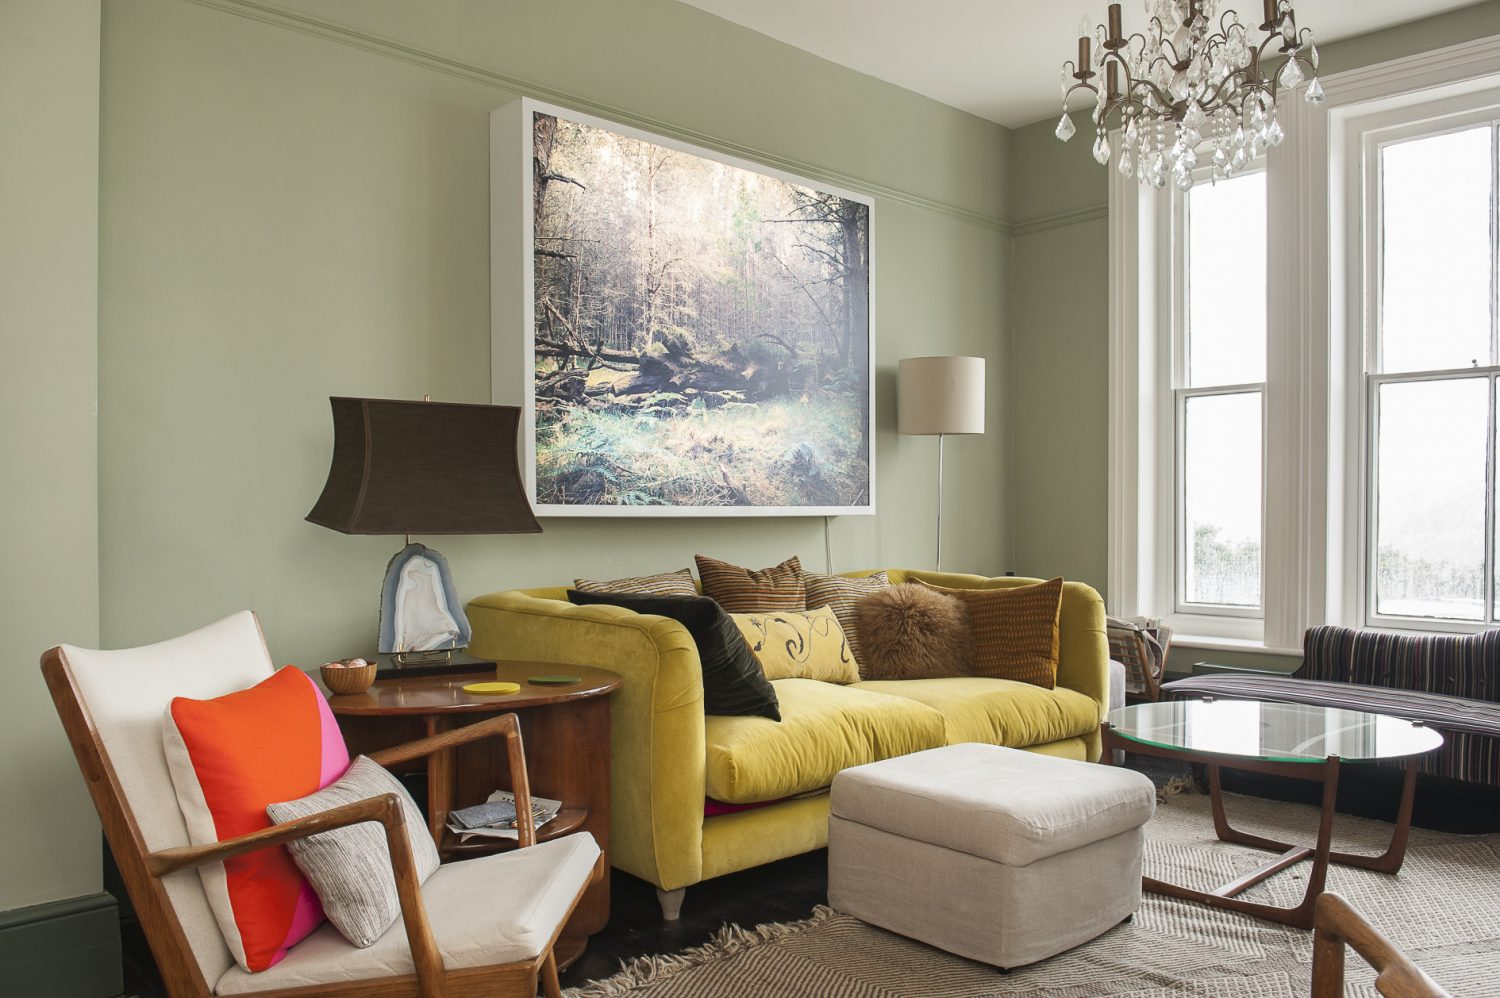 The sitting room looks out over Hastings Old Town to the sea. The sofa - in Ginny's beloved yellow - is by Loaf and the artwork above it is a lightbox installation of a woodland scene by Dalziel + Scullion